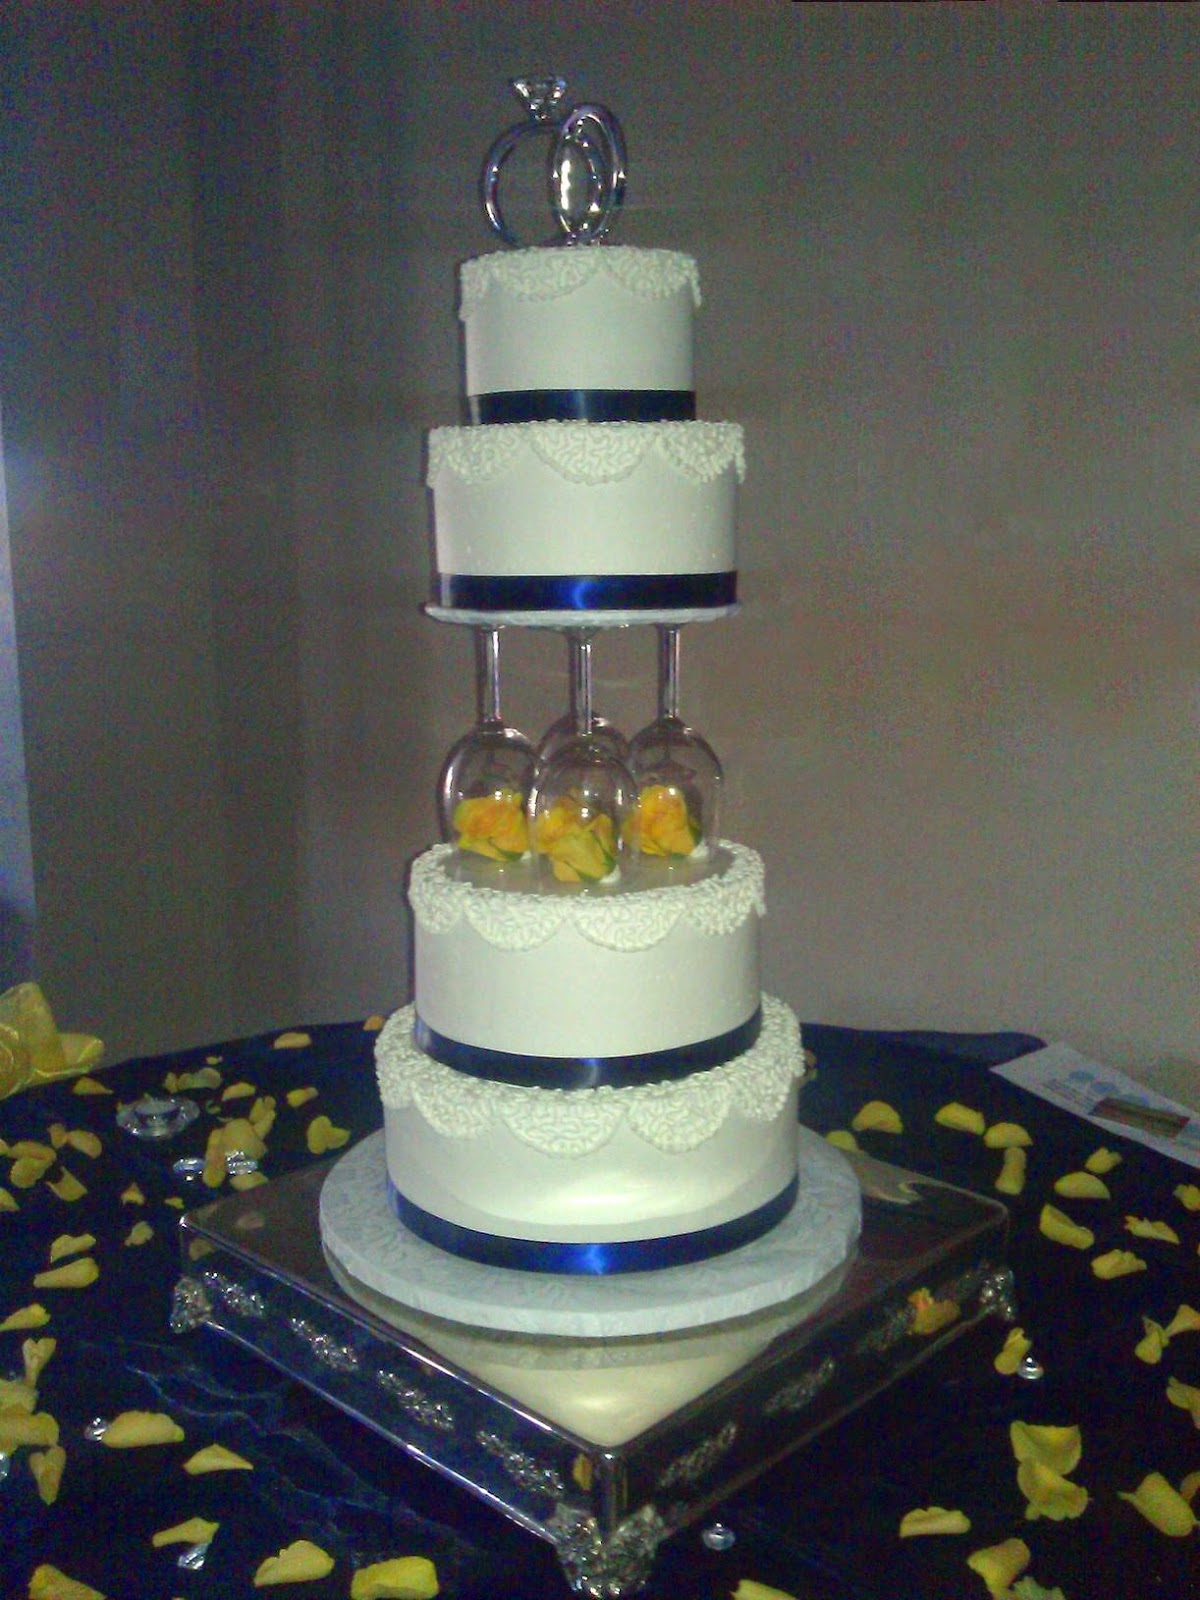 CCs Sweet Sensations Wedding and Party cakes and Chocolate Fountains Whip Cream and Wine Glass